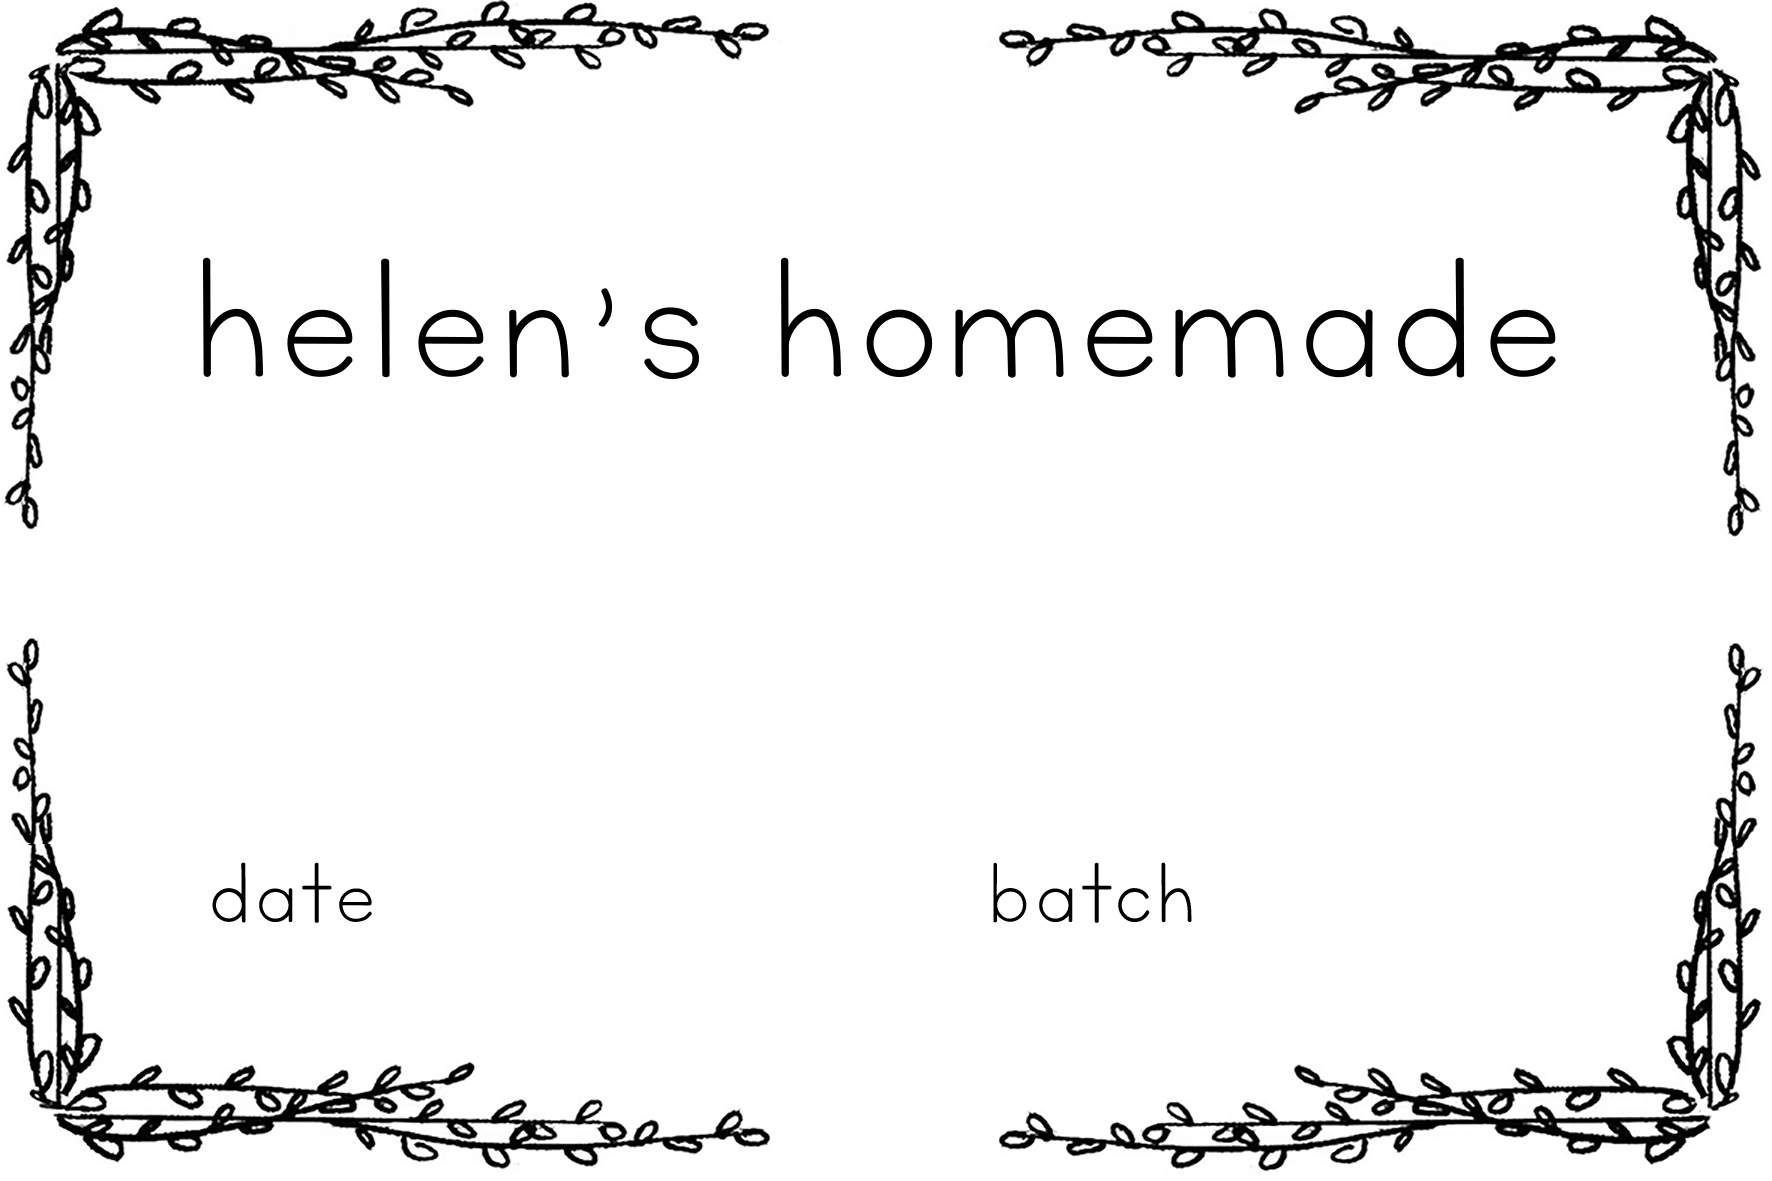 Labels - Helen's homemade